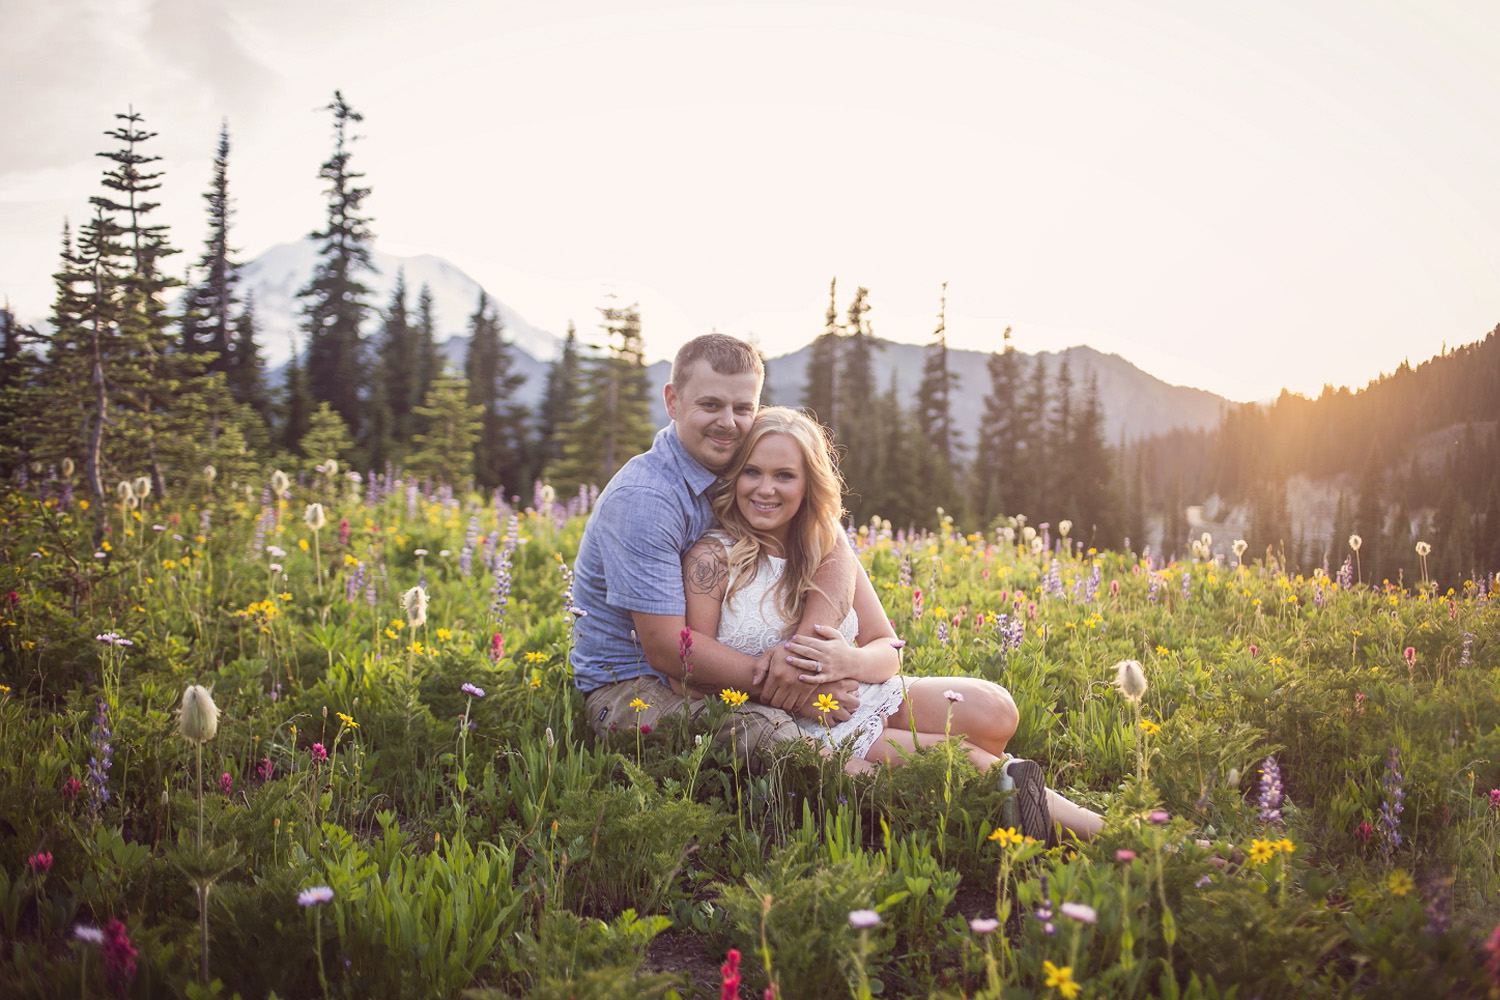 Mt_rainier_engagement_photographer_4.jpg